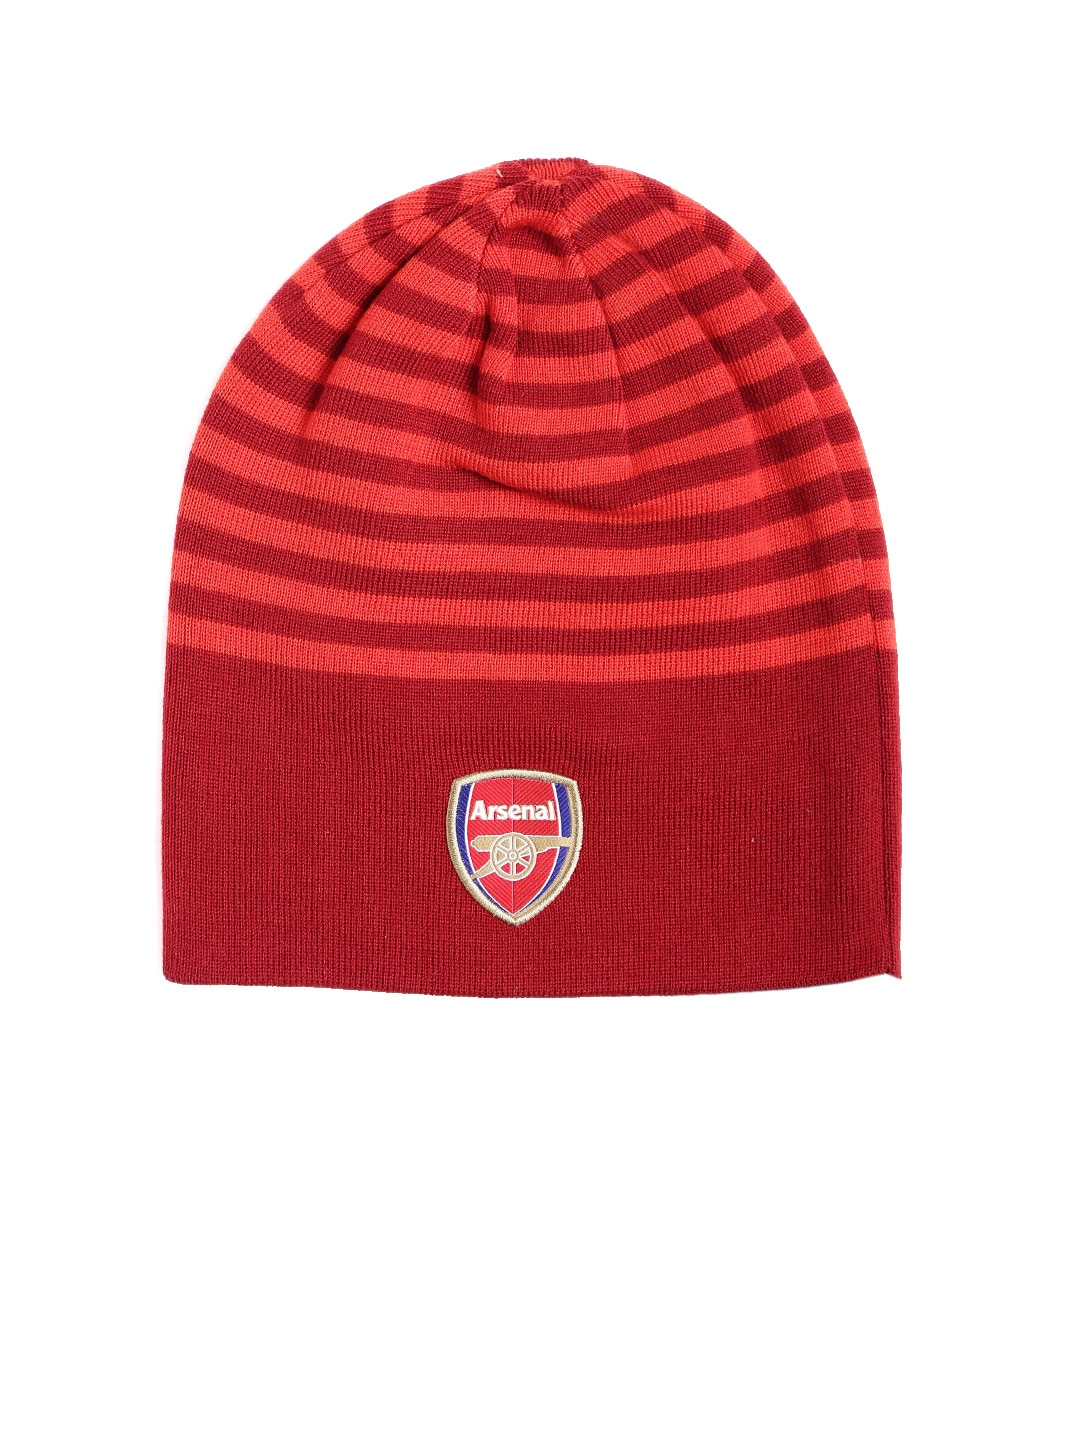 Puma Red Caps - Buy Puma Red Caps online in India 371394f6021